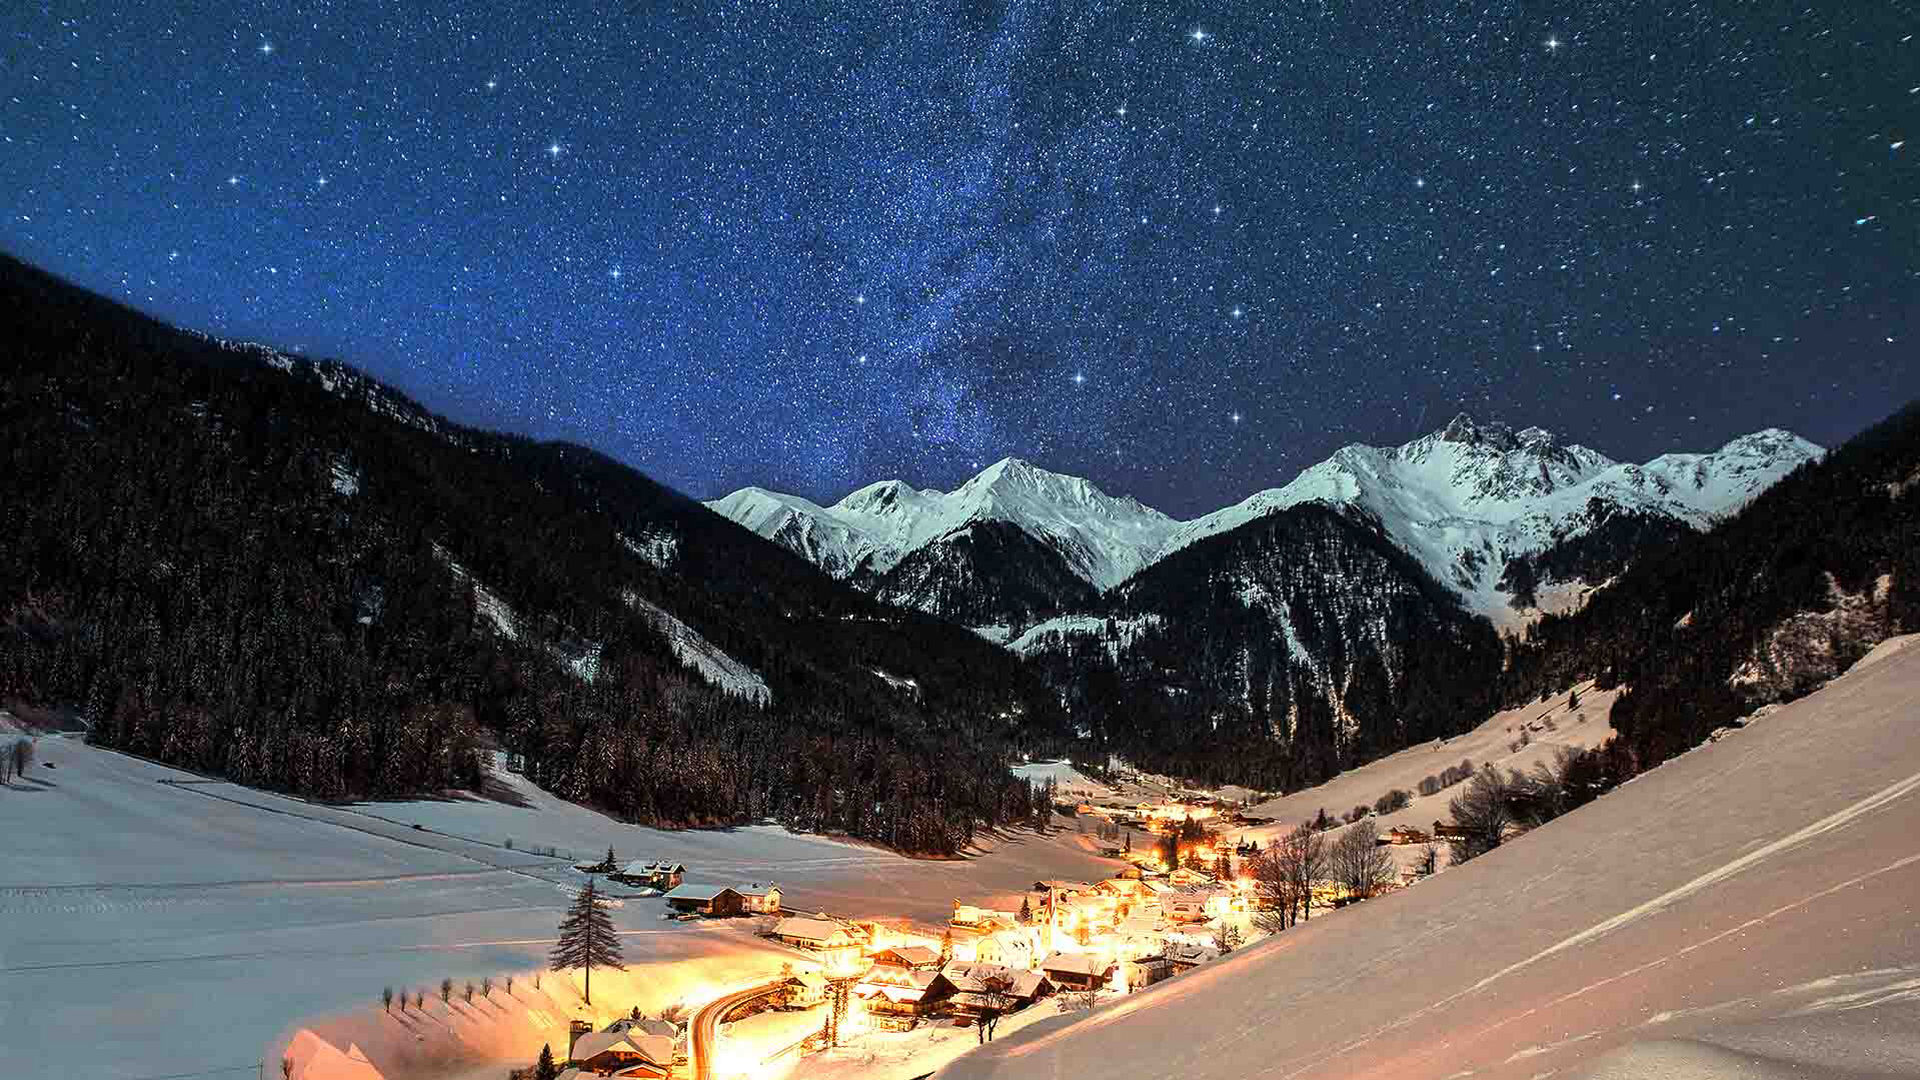 Bright snowy city surrounded by mountains